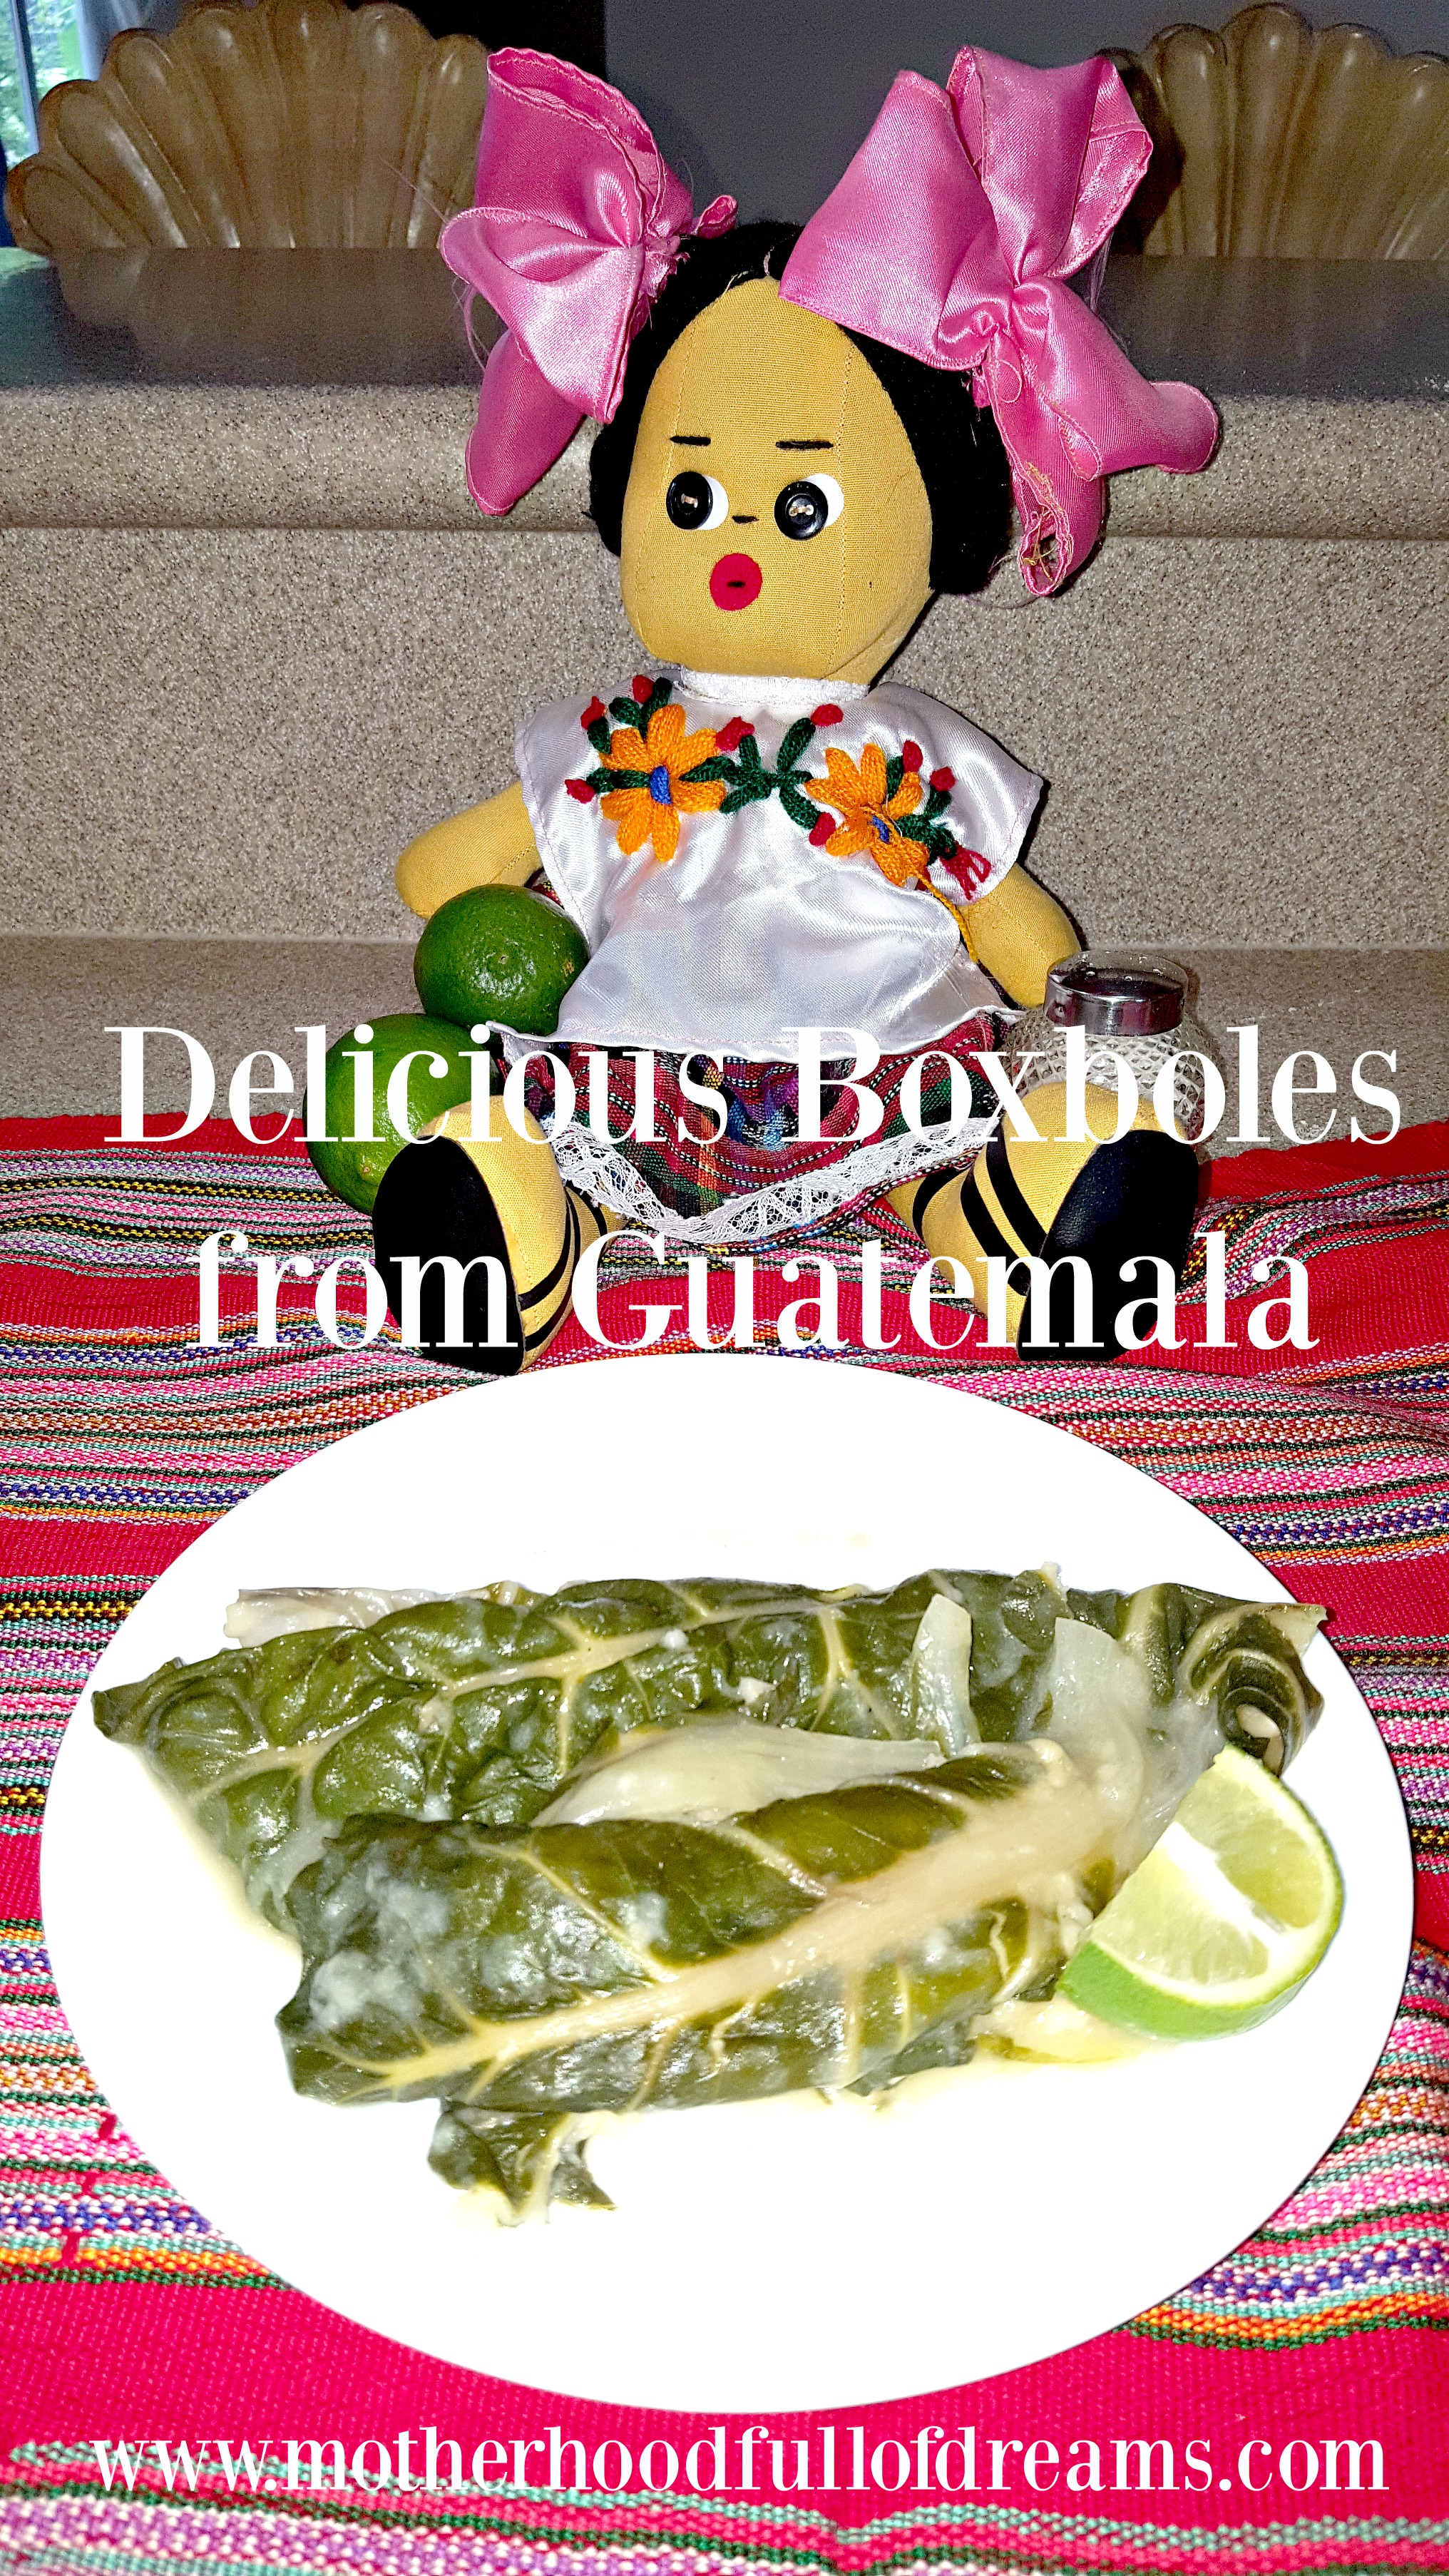 Boxboles from Guatemala – Getting Messy in the Kitchen